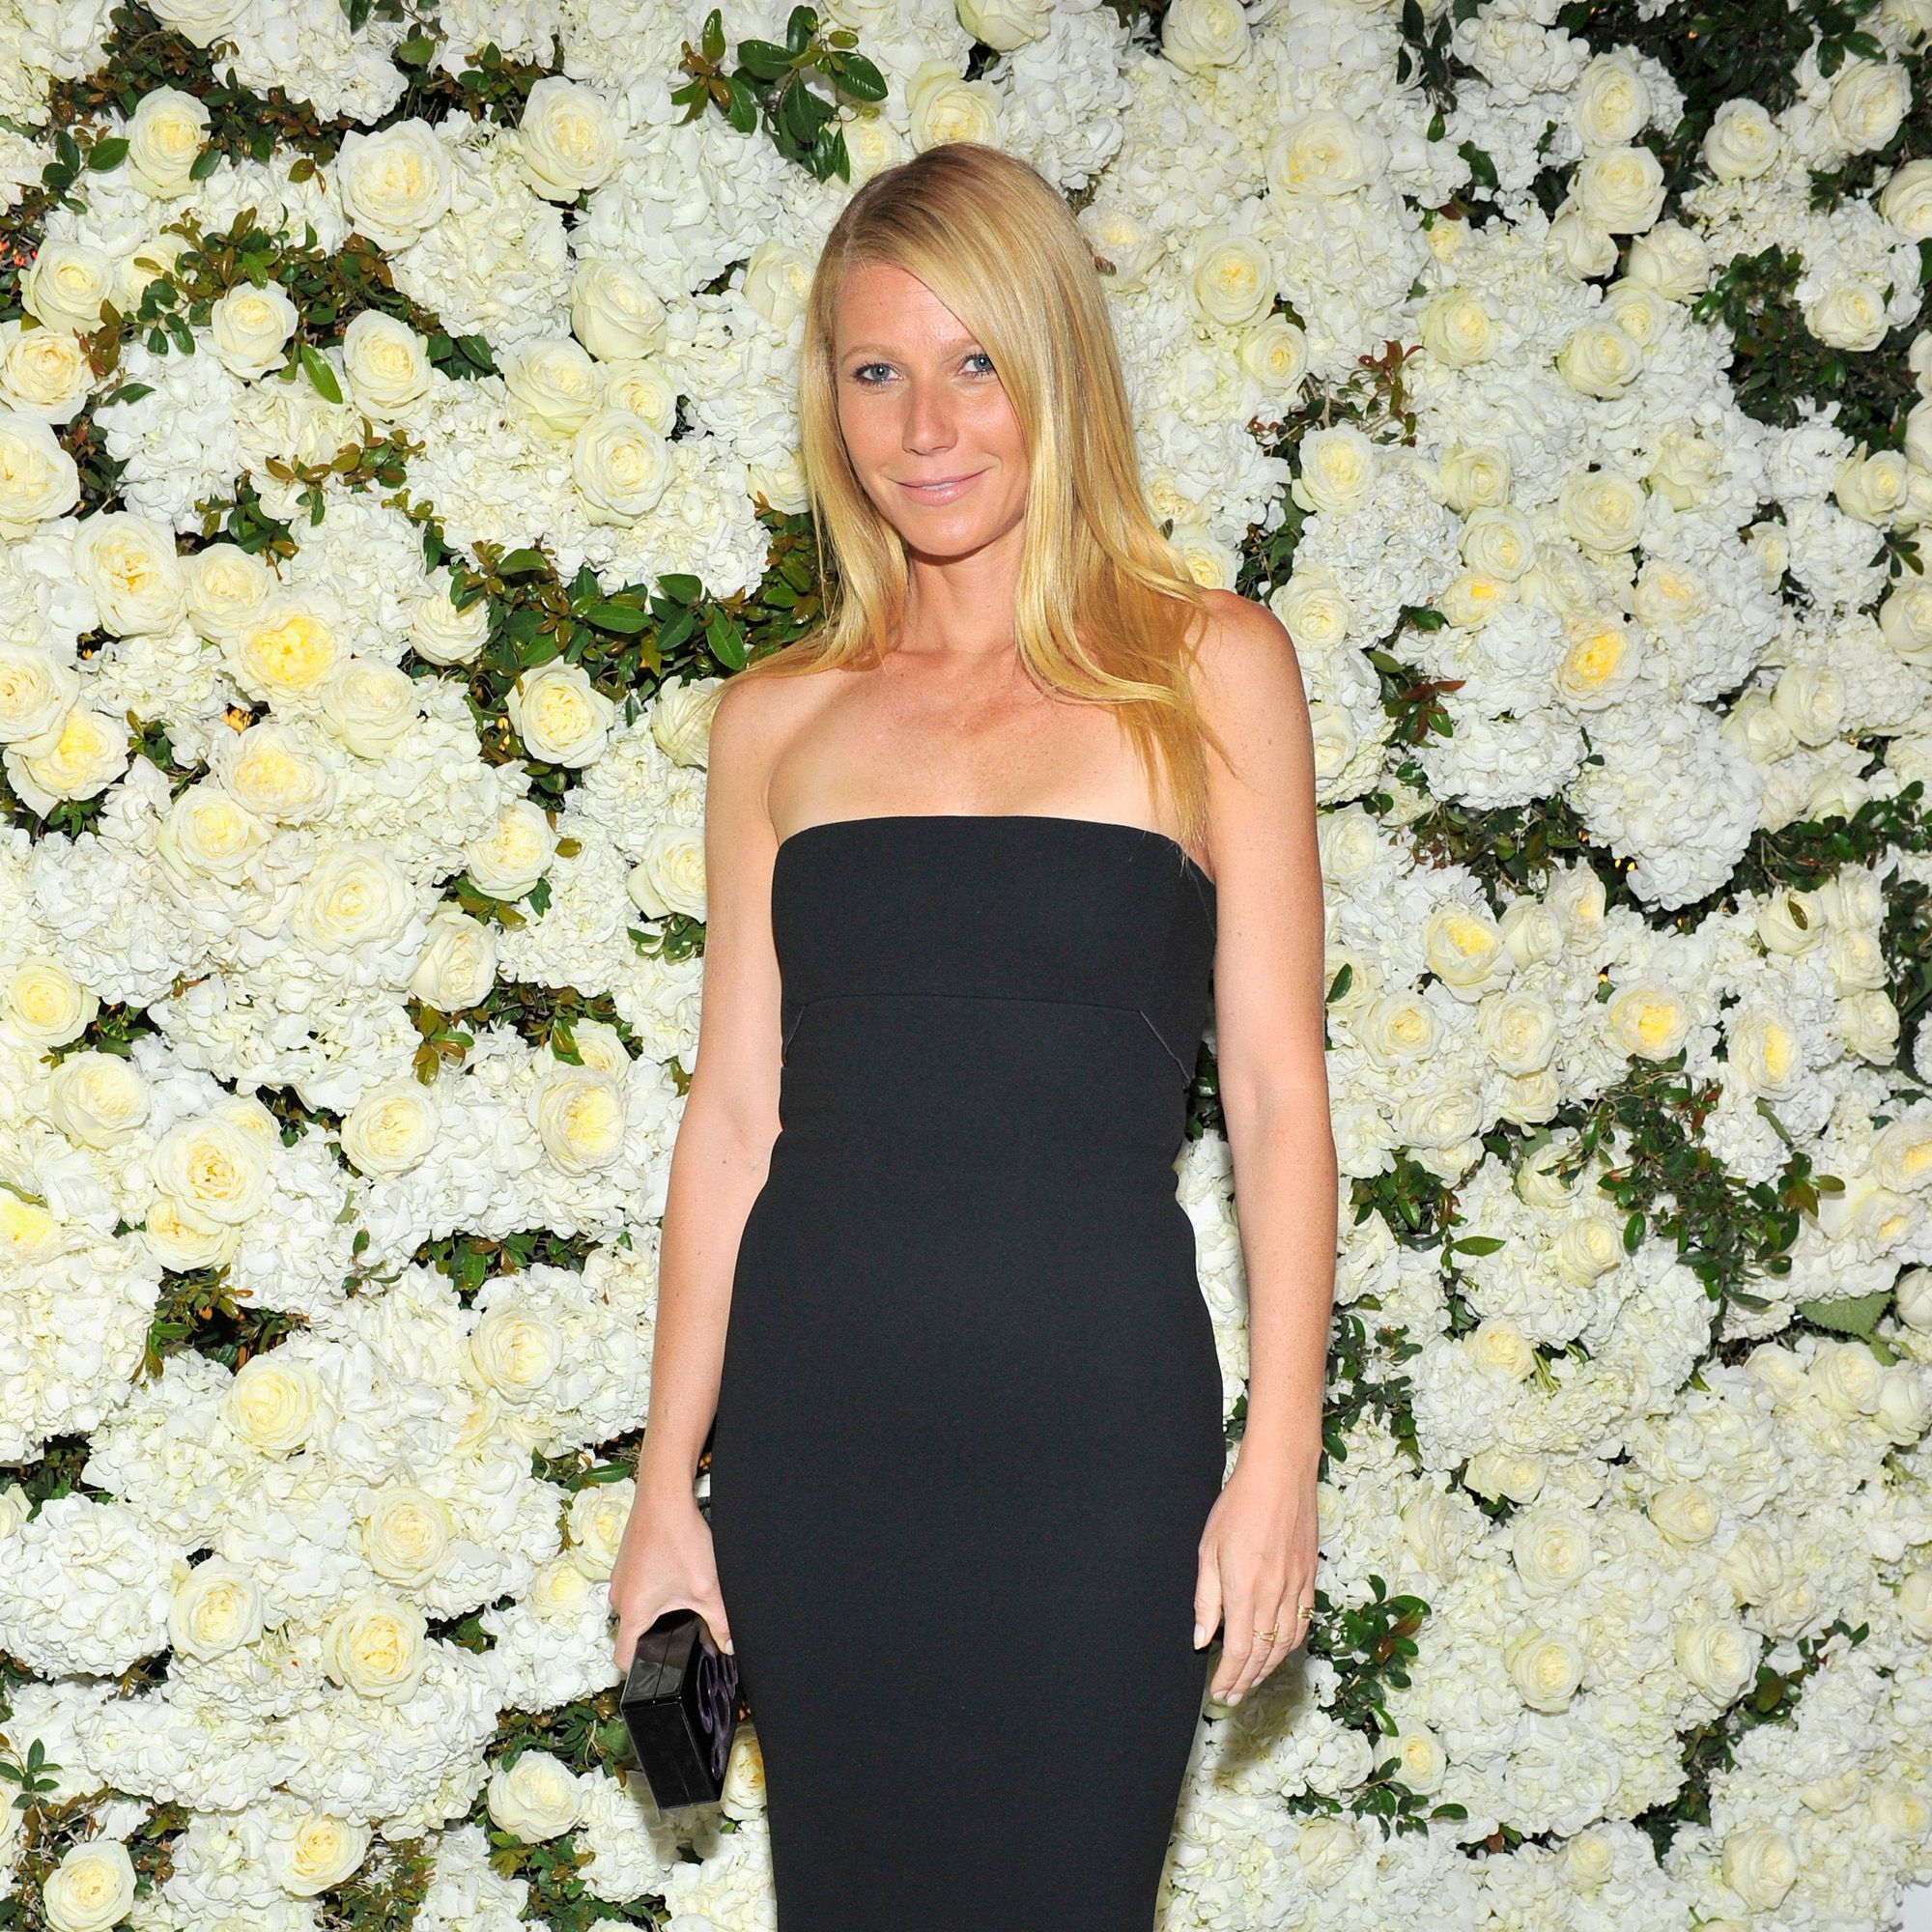 BEVERLY HILLS, CA - APRIL 14:  Actress Gwyneth Paltrow attends David And Victoria Beckham, Along With Barneys New York, Host A Dinner To Celebrate The Victoria Beckham Collection at Fred's at Barneys on April 14, 2015 in Beverly Hills, California.  (Photo by Donato Sardella/Getty Images for Barneys New York)